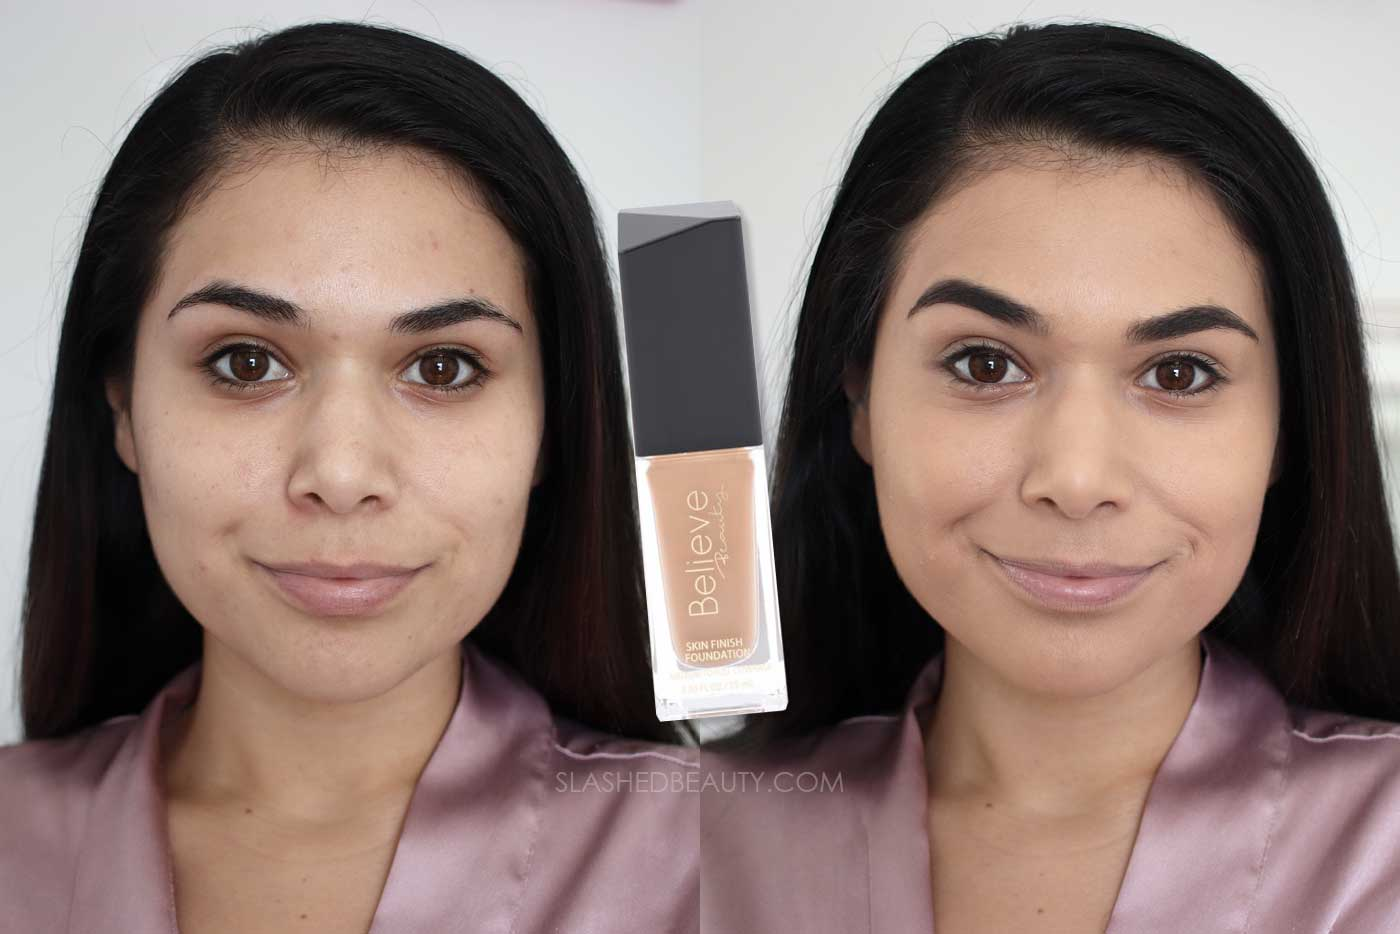 Discover the 4 Best Full Coverage Drugstore Foundations | Believe Beauty Skin Finish Foundation Review Before & After | Slashed Beauty